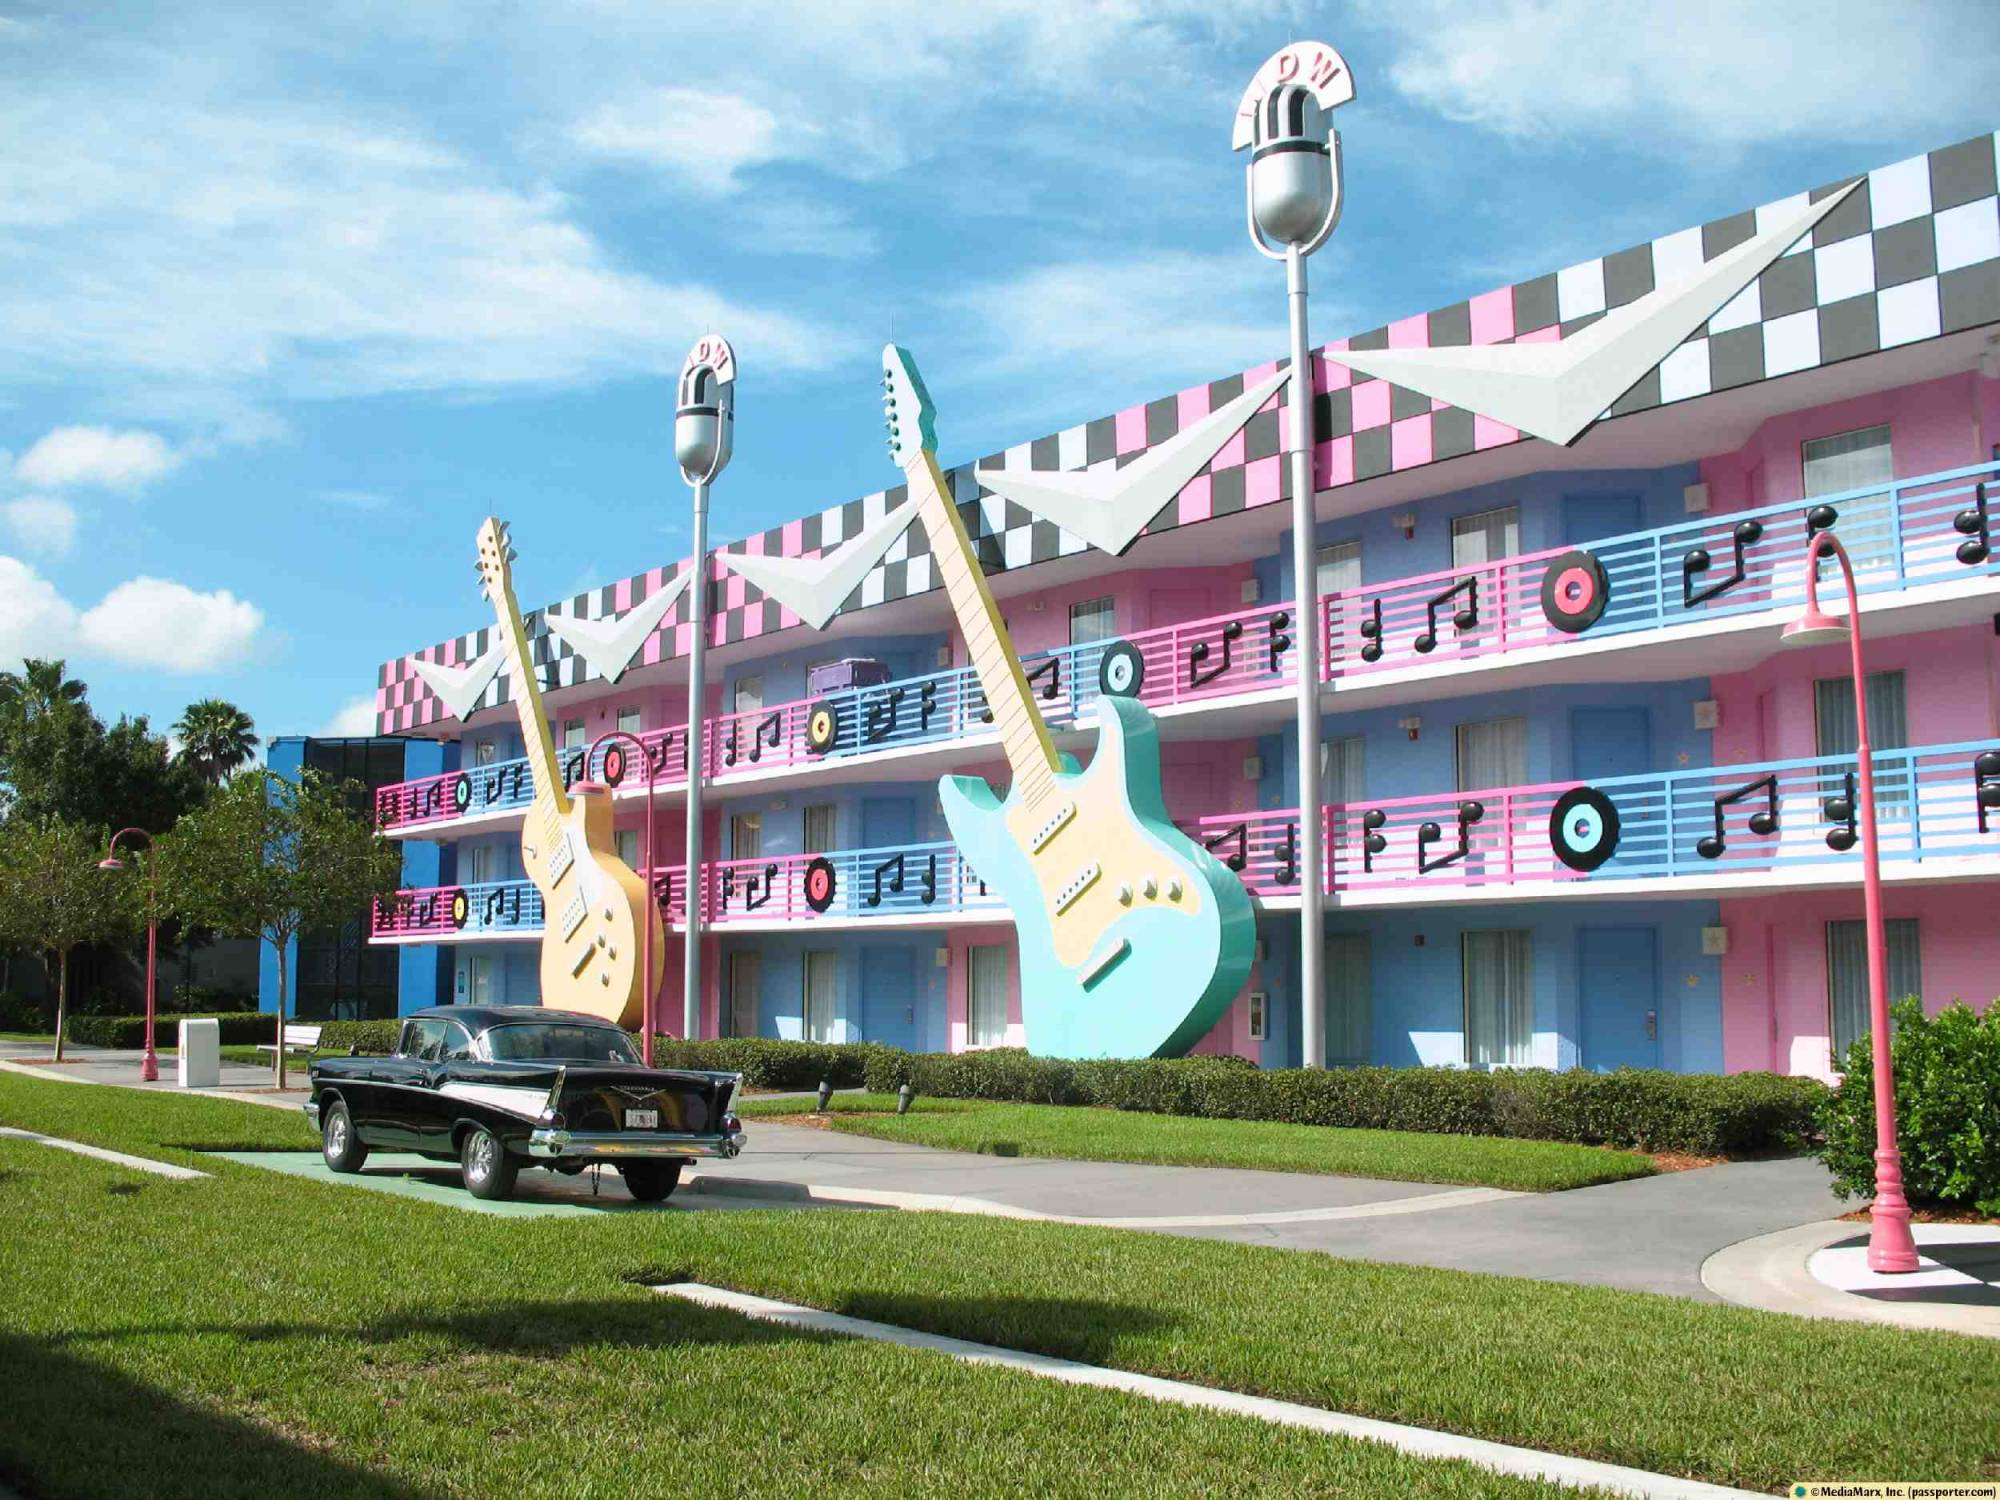 Make the most of your All-Star Music Resort hotel stay with great tips | PassPorter.com